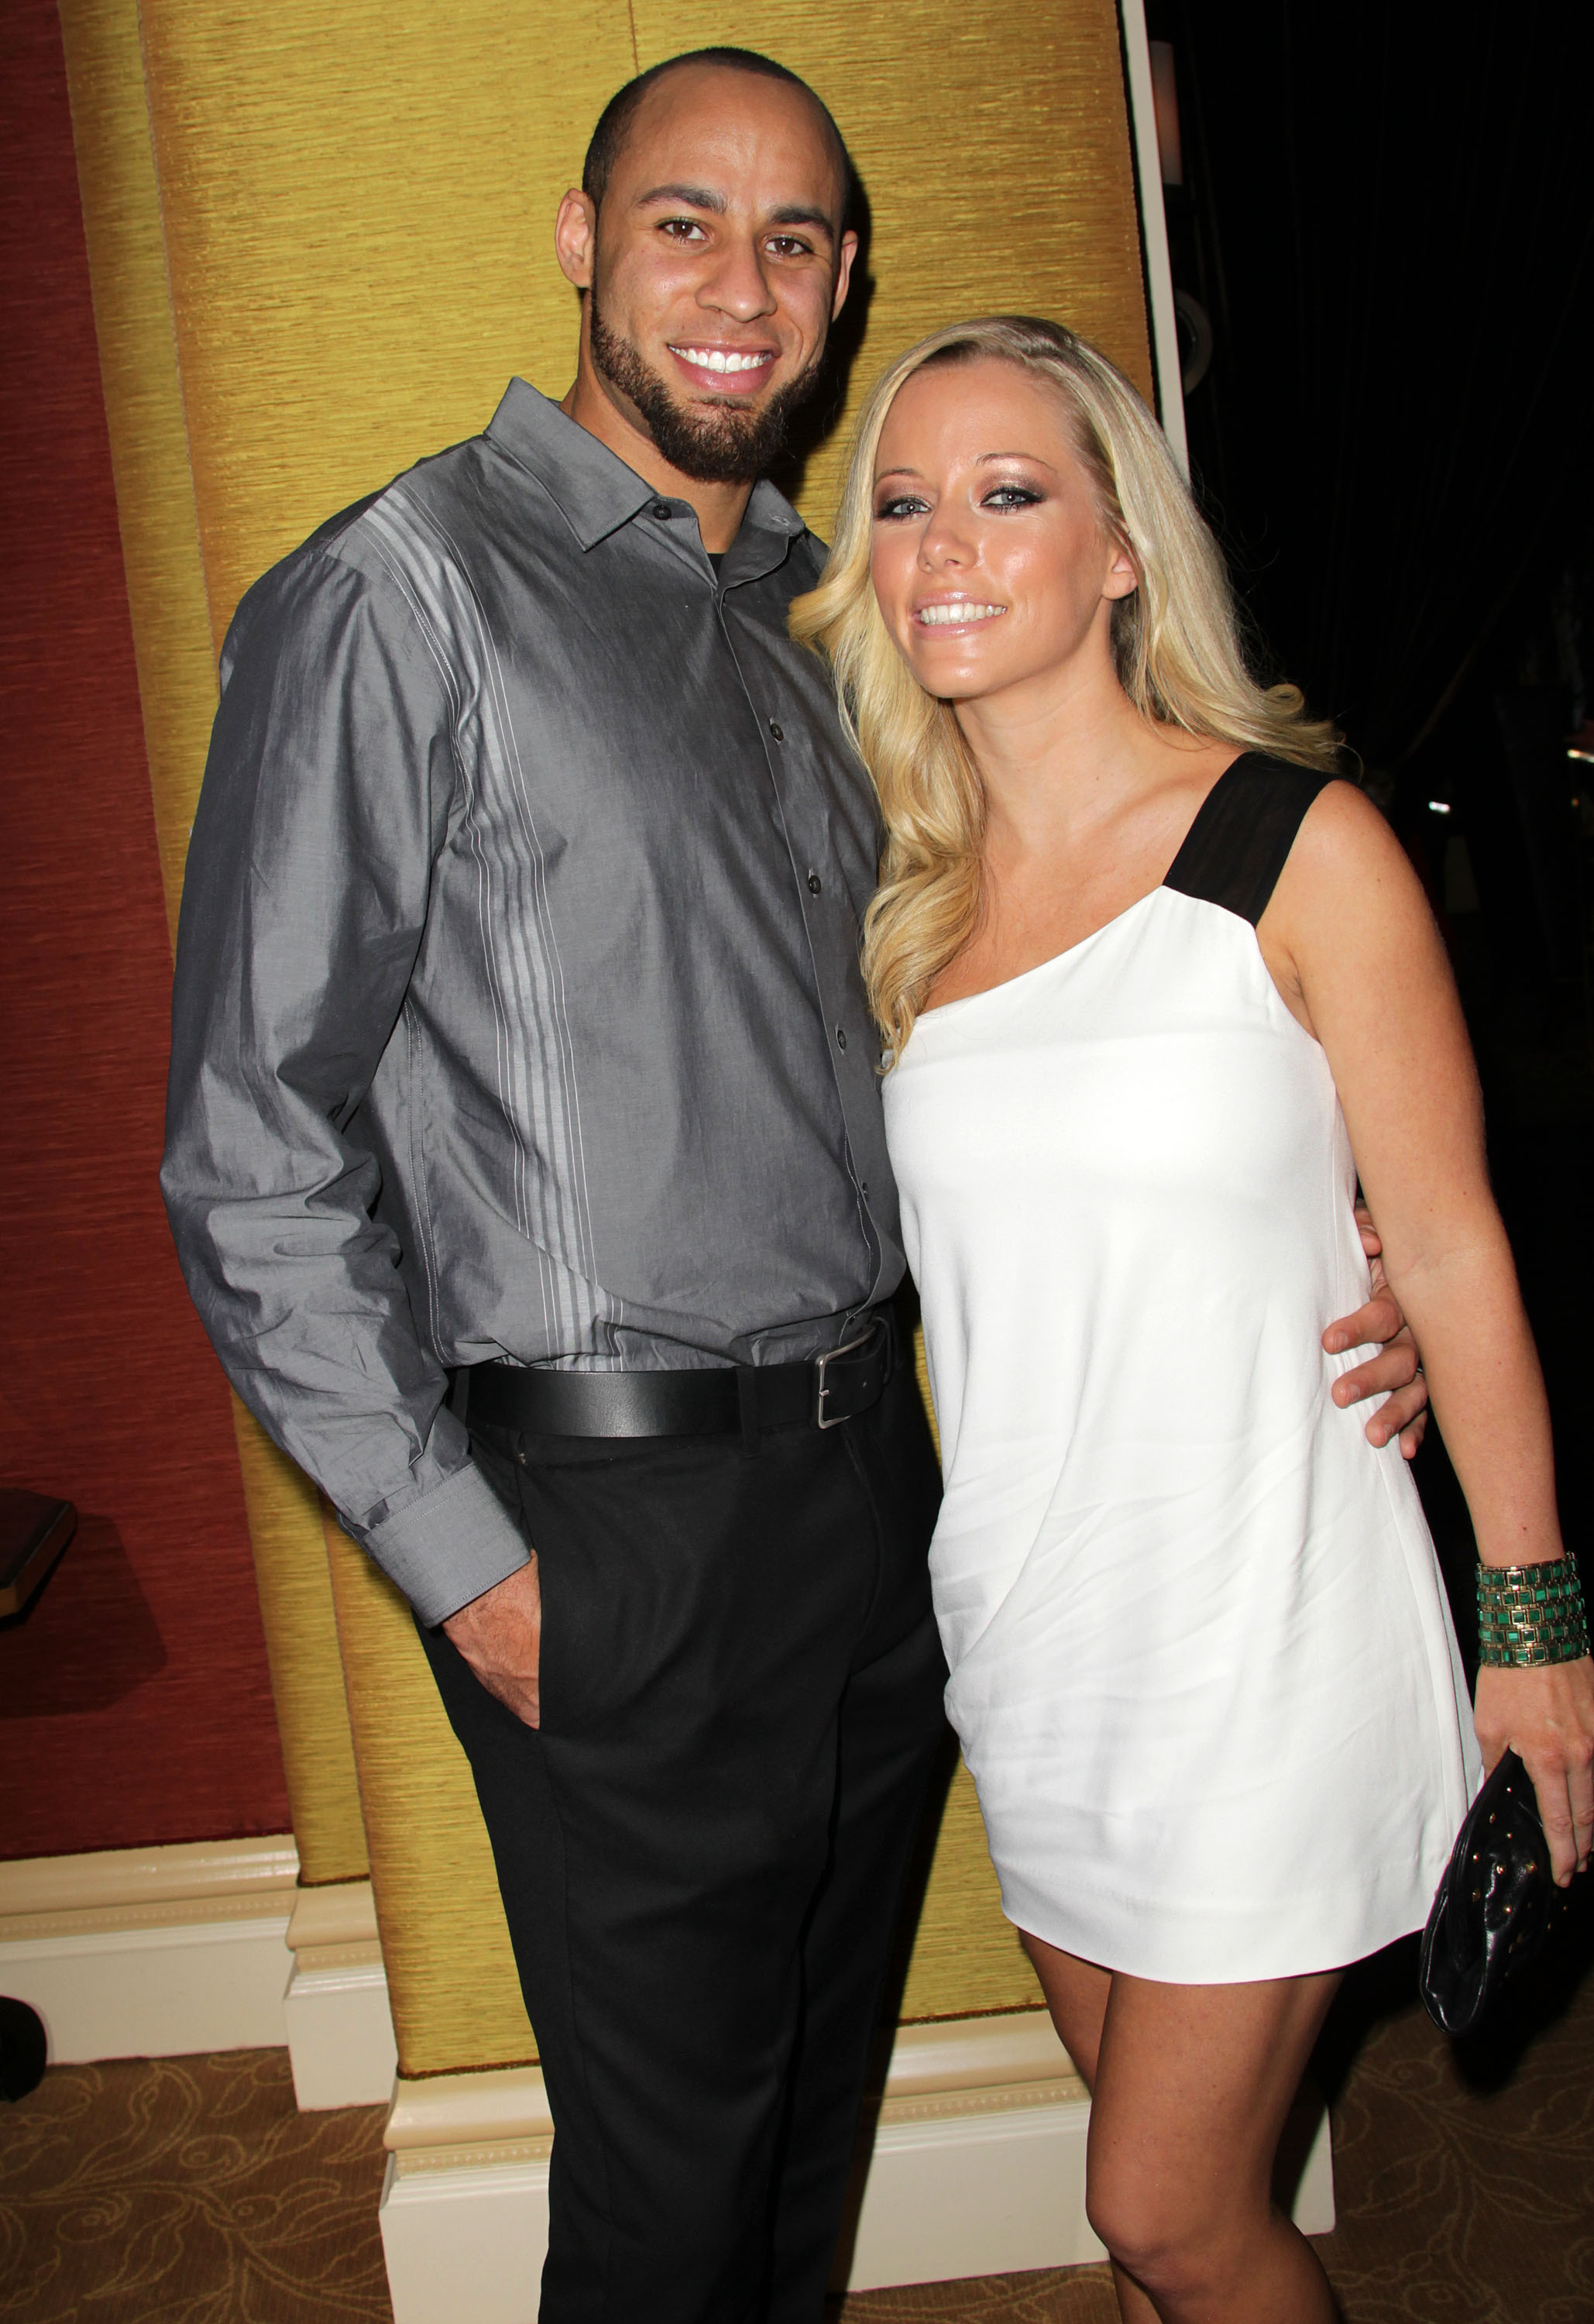 Married couple and kendra star